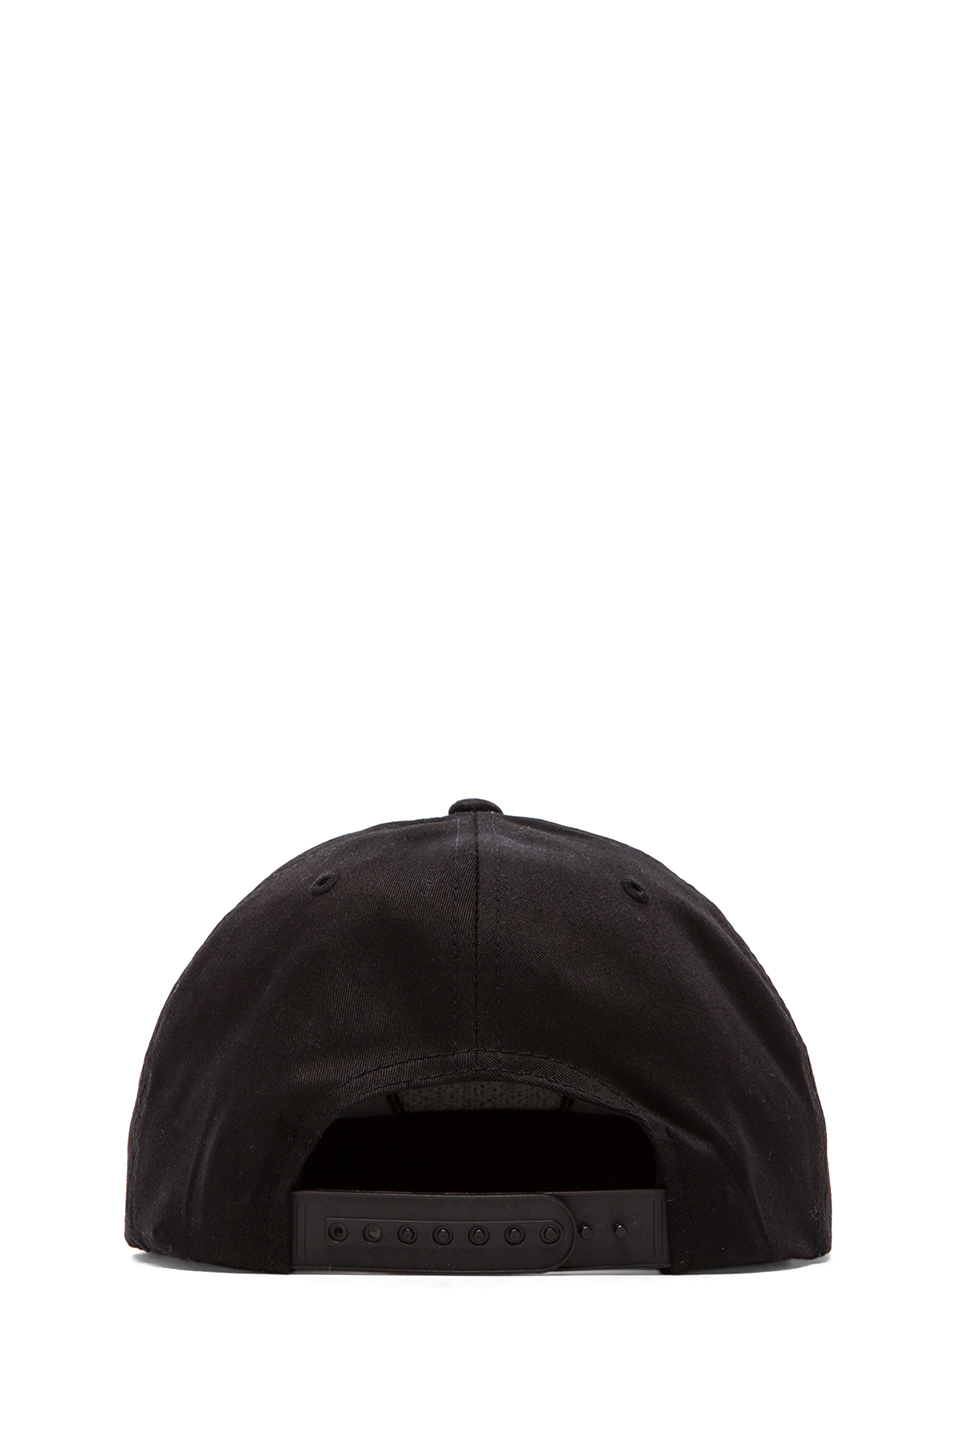 Lyst - Stussy 8ball Snapback in Black for Men ad4437513cee